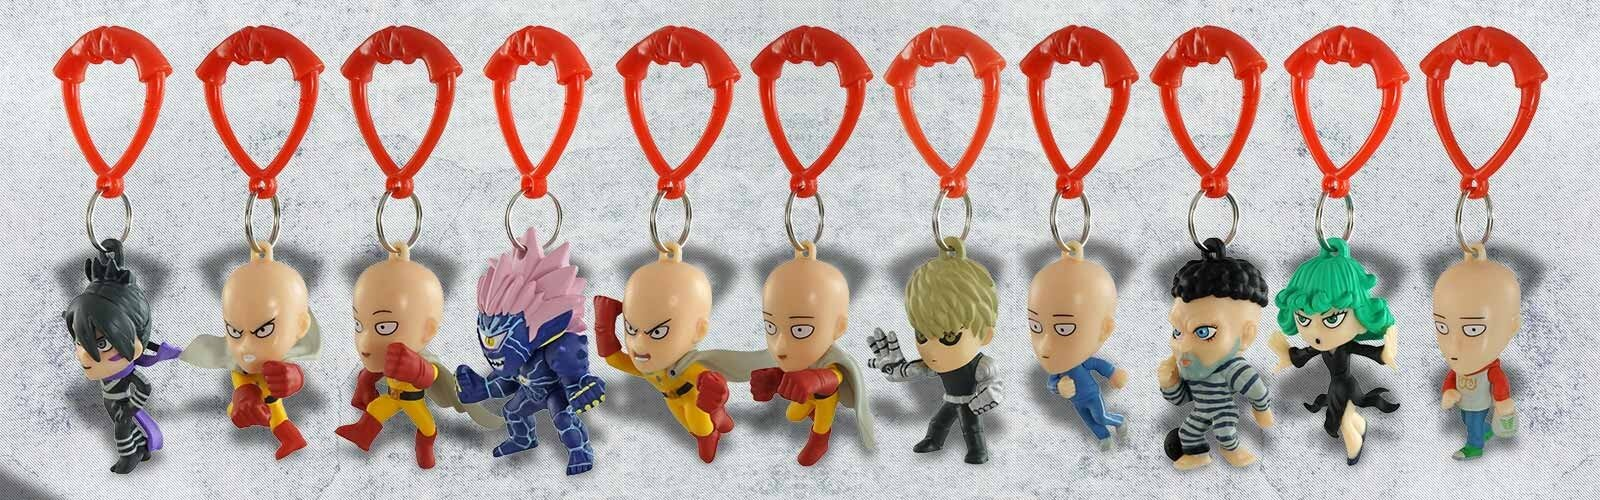 keyrings bag anime roundup simply blind box keyring sinova blinds series disney figural